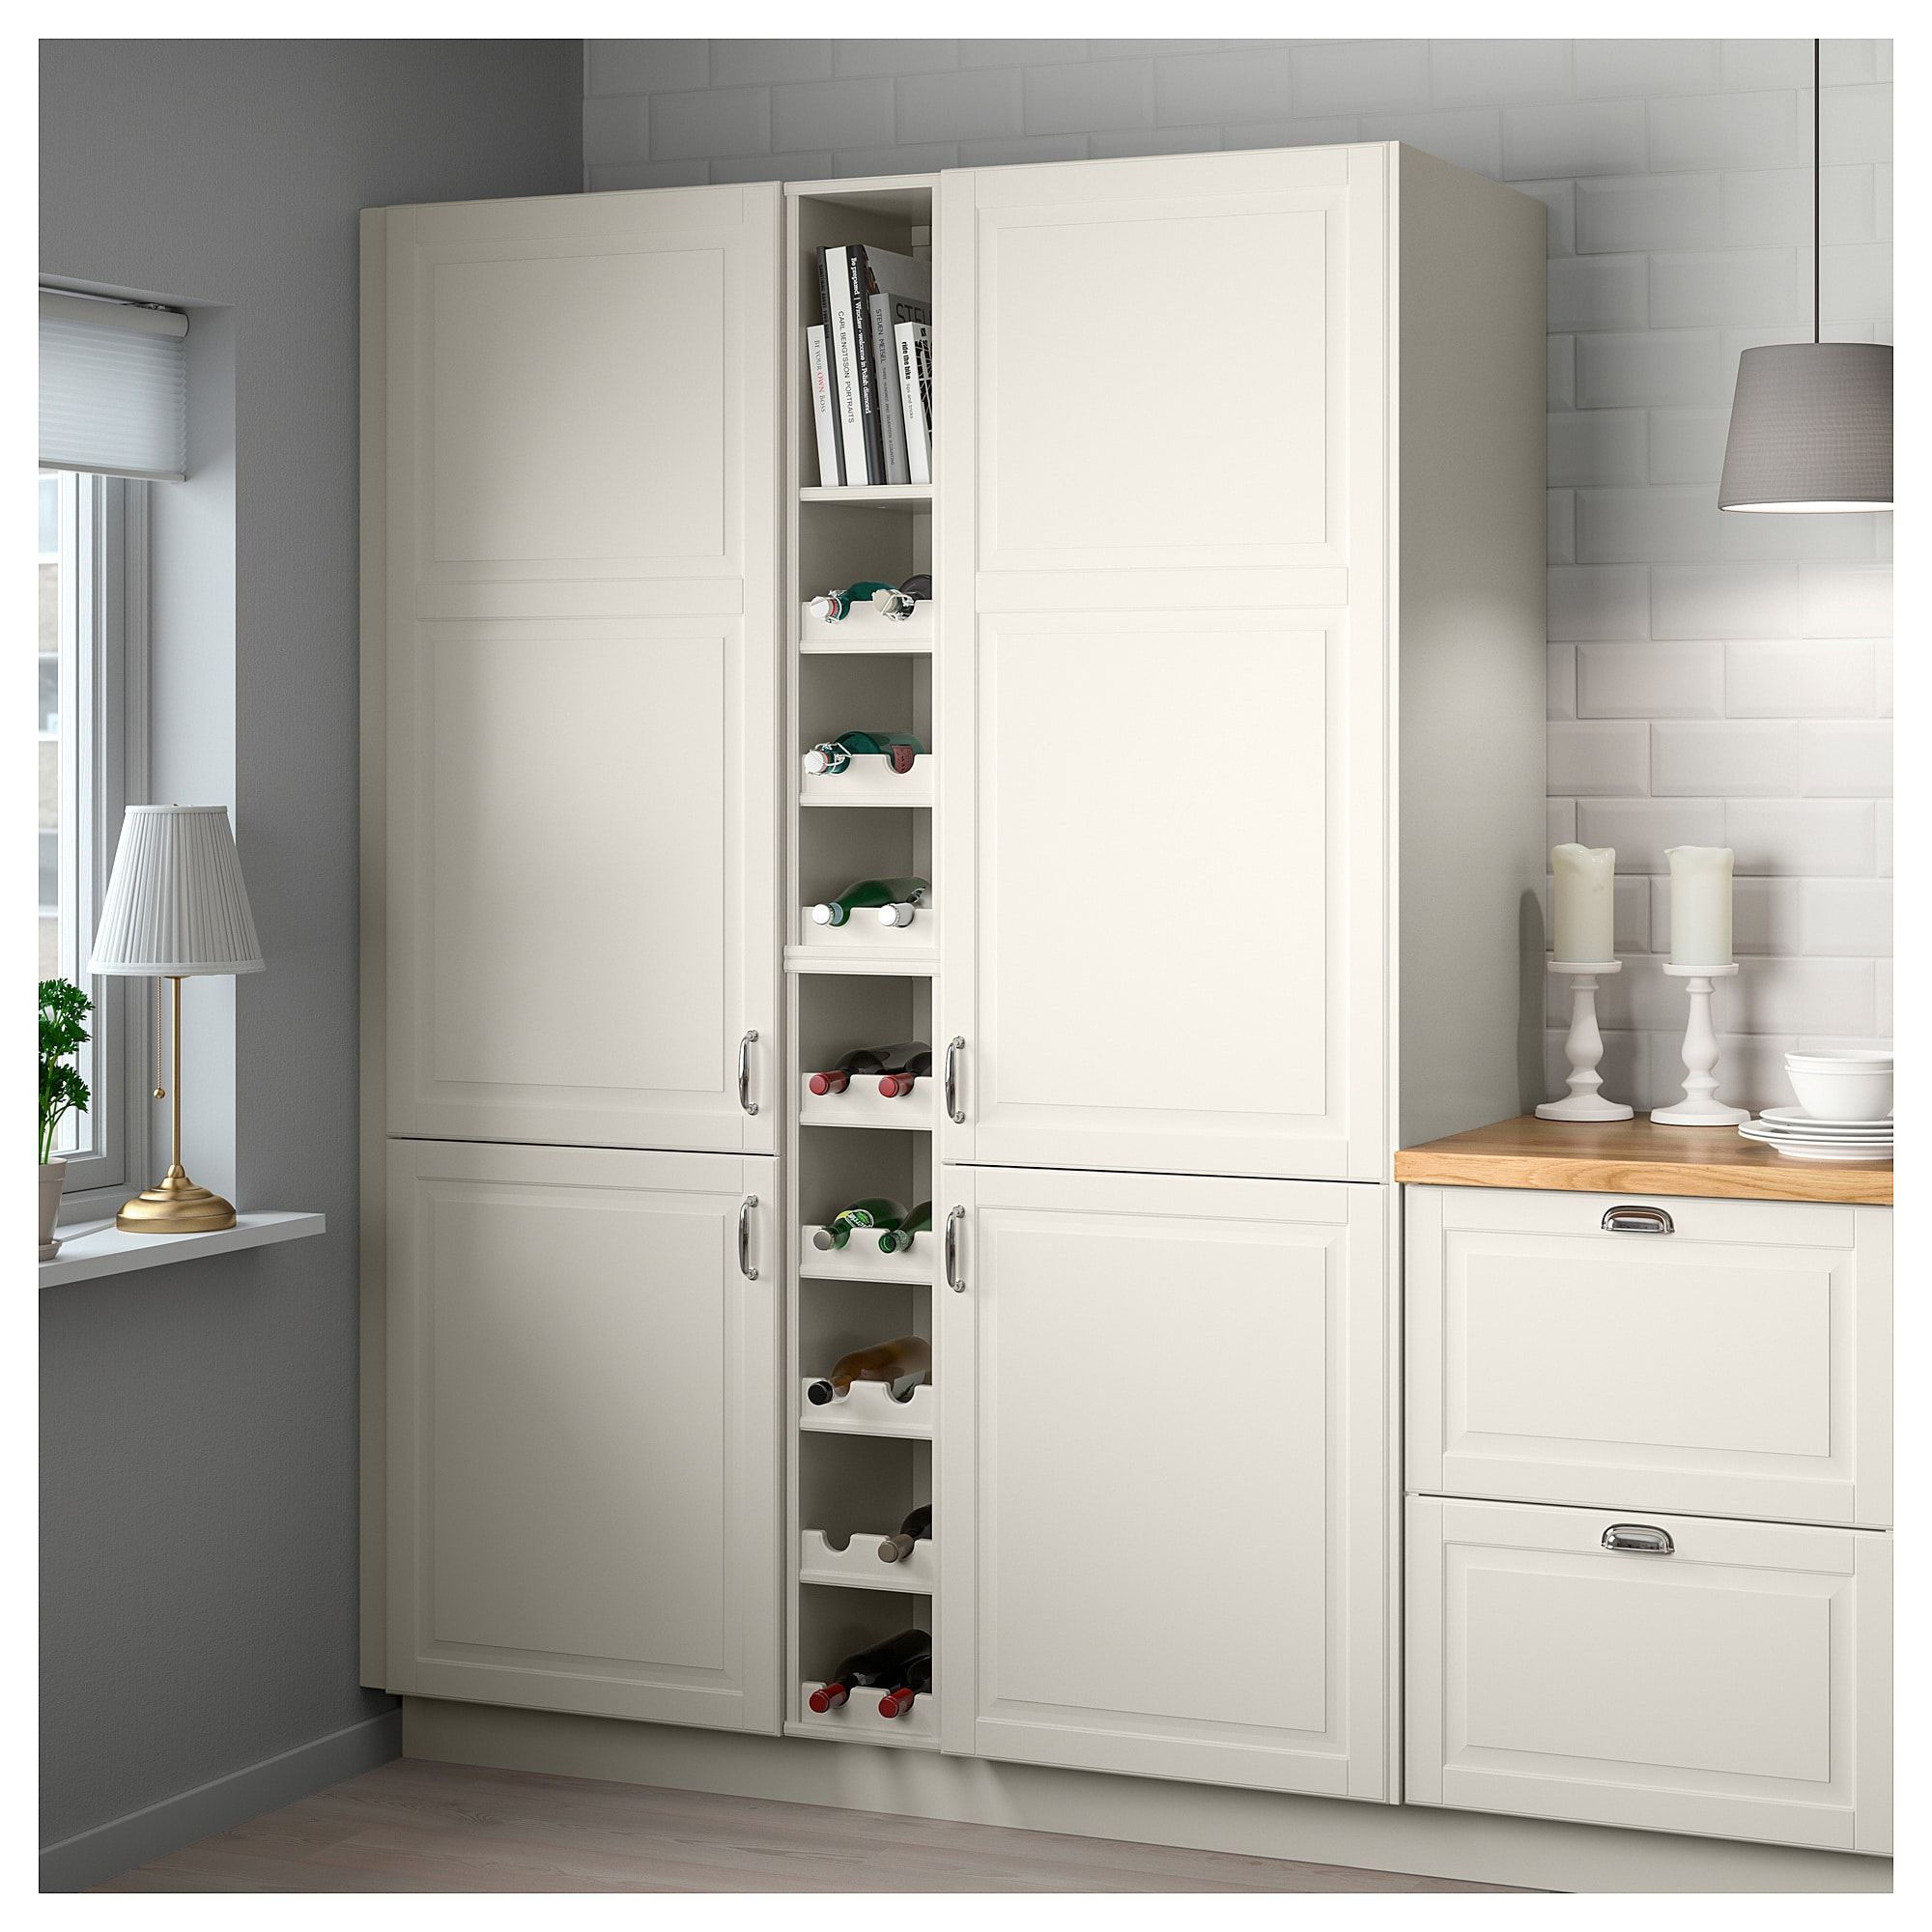 Tornviken Open Cabinet Off White Shop Ikea Ikea White Kitchen Pantry Cabinet Pantry Cabinet Home Depot Kitchen Pantry Cabinet Ikea